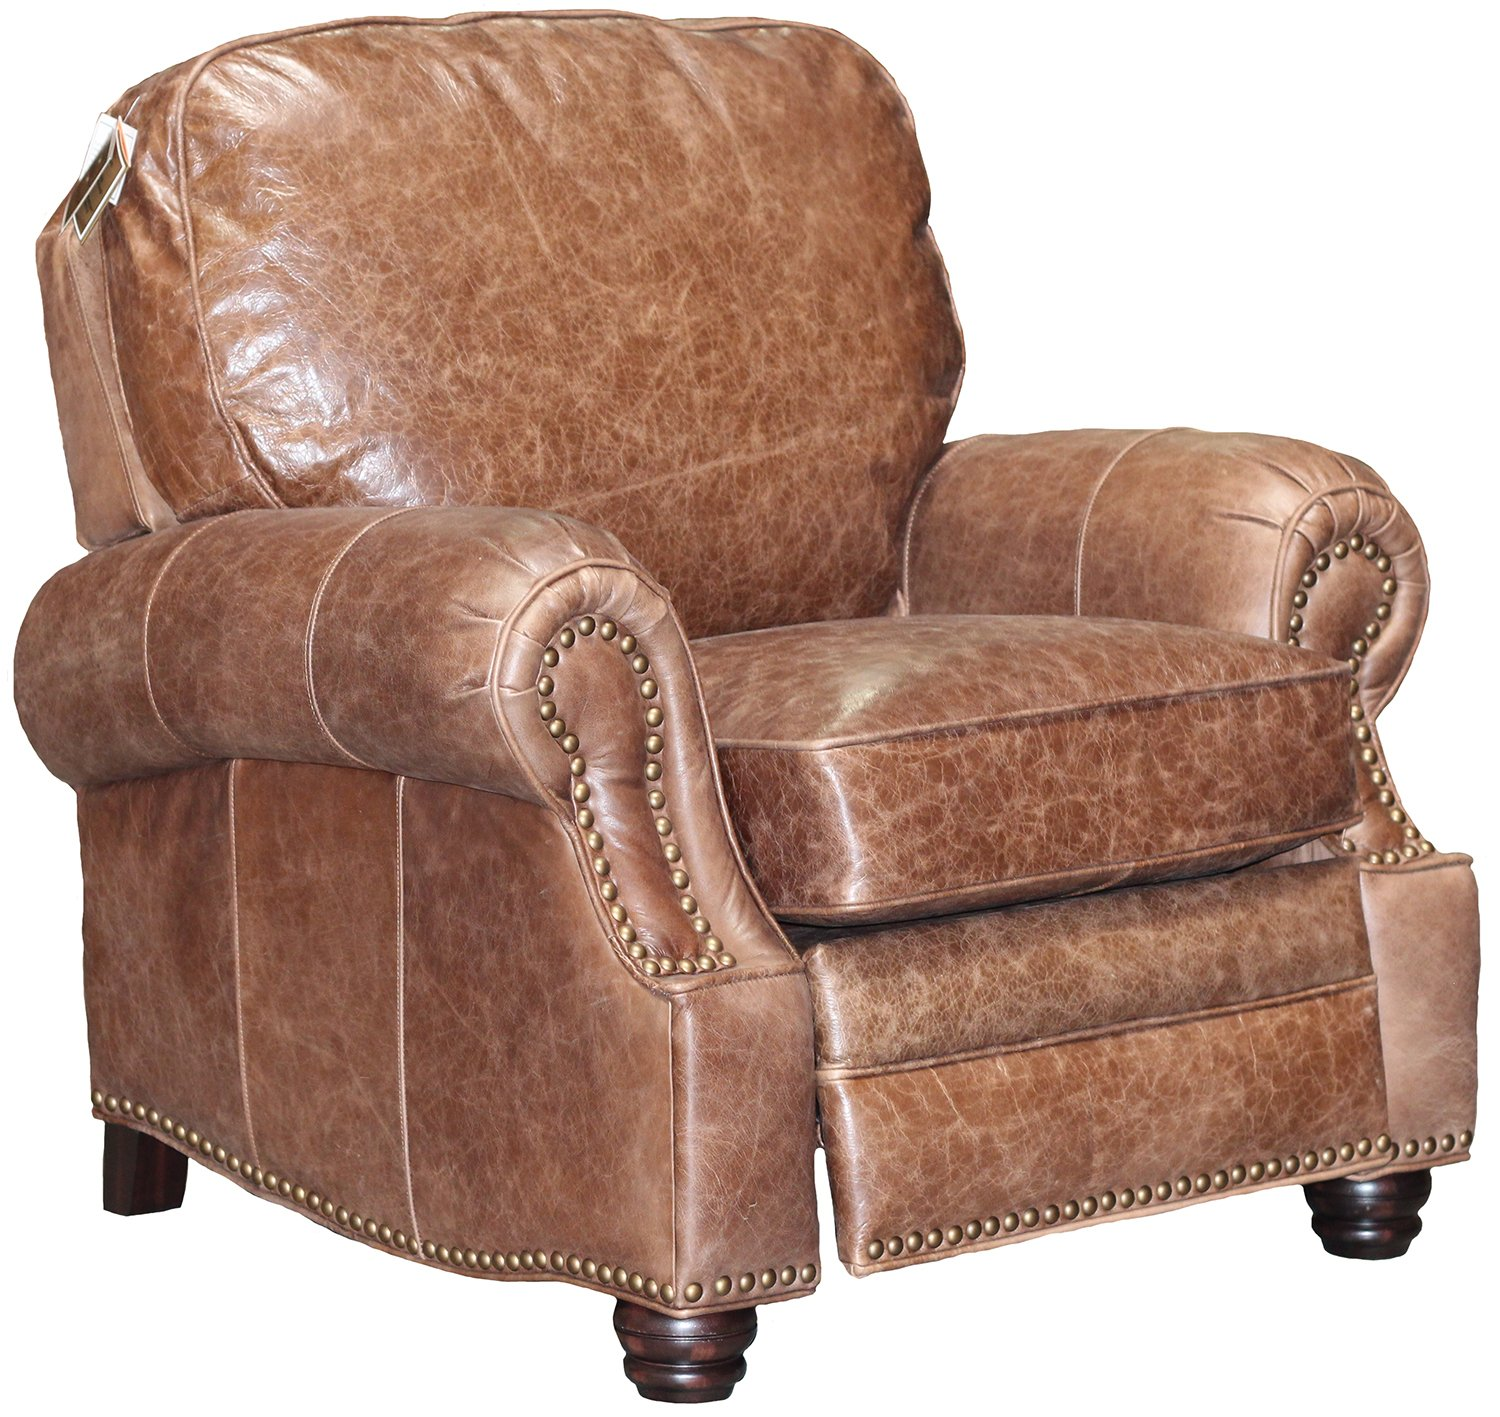 Amazon com  Barcalounger Longhorn II Leather Recliner Havana Brown Top  Grain Leather Chair with Espresso Wood Legs   Standard Ground Curbside  Delivery in  Amazon com  Barcalounger Longhorn II Leather Recliner Havana Brown  . Havana Leather Armchair. Home Design Ideas